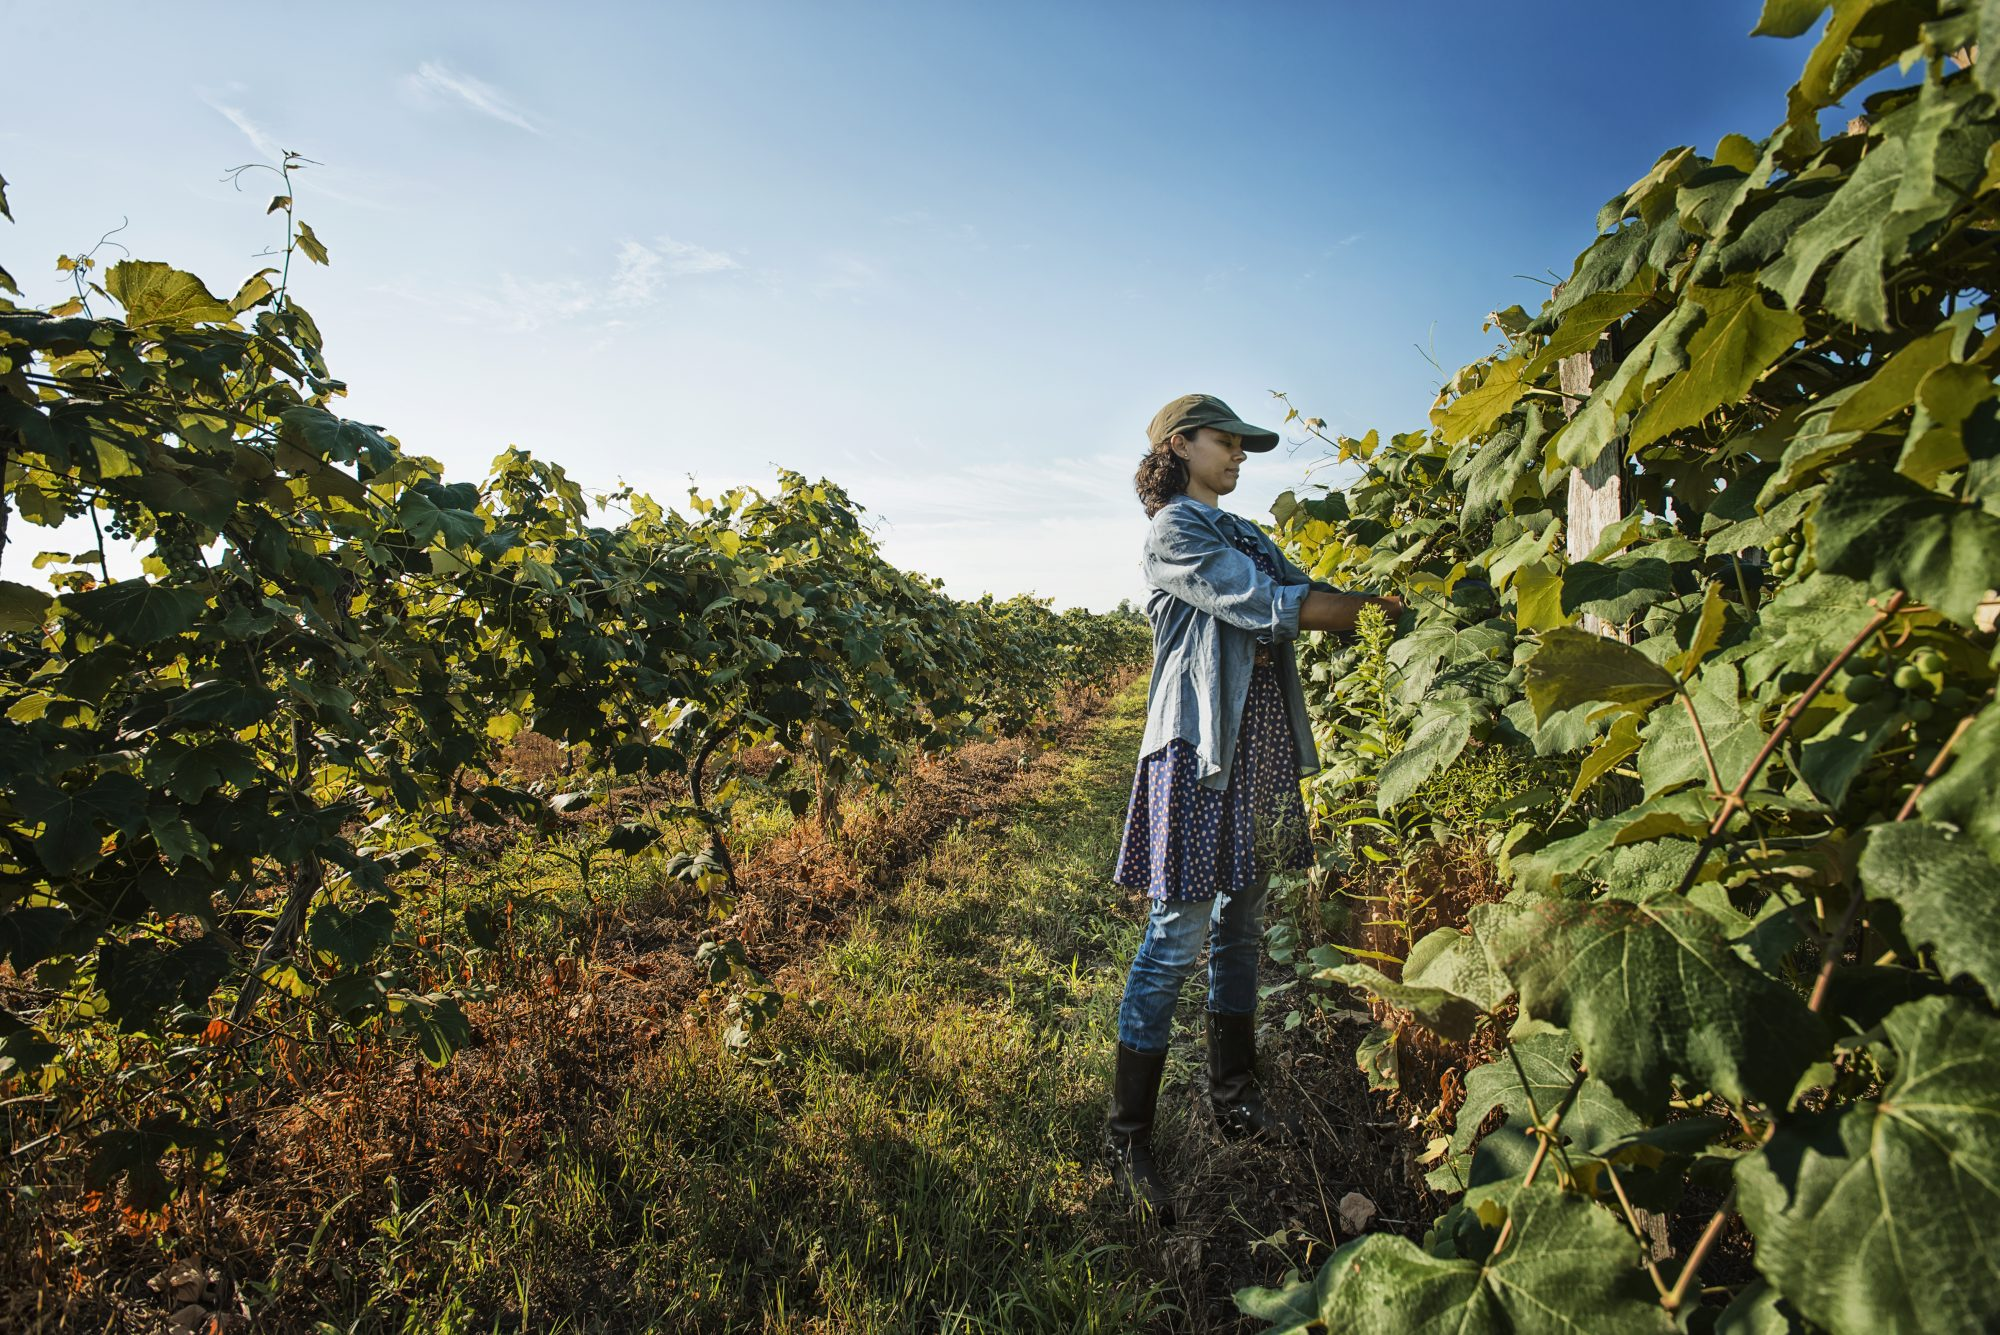 woman tending to crops on her small farm